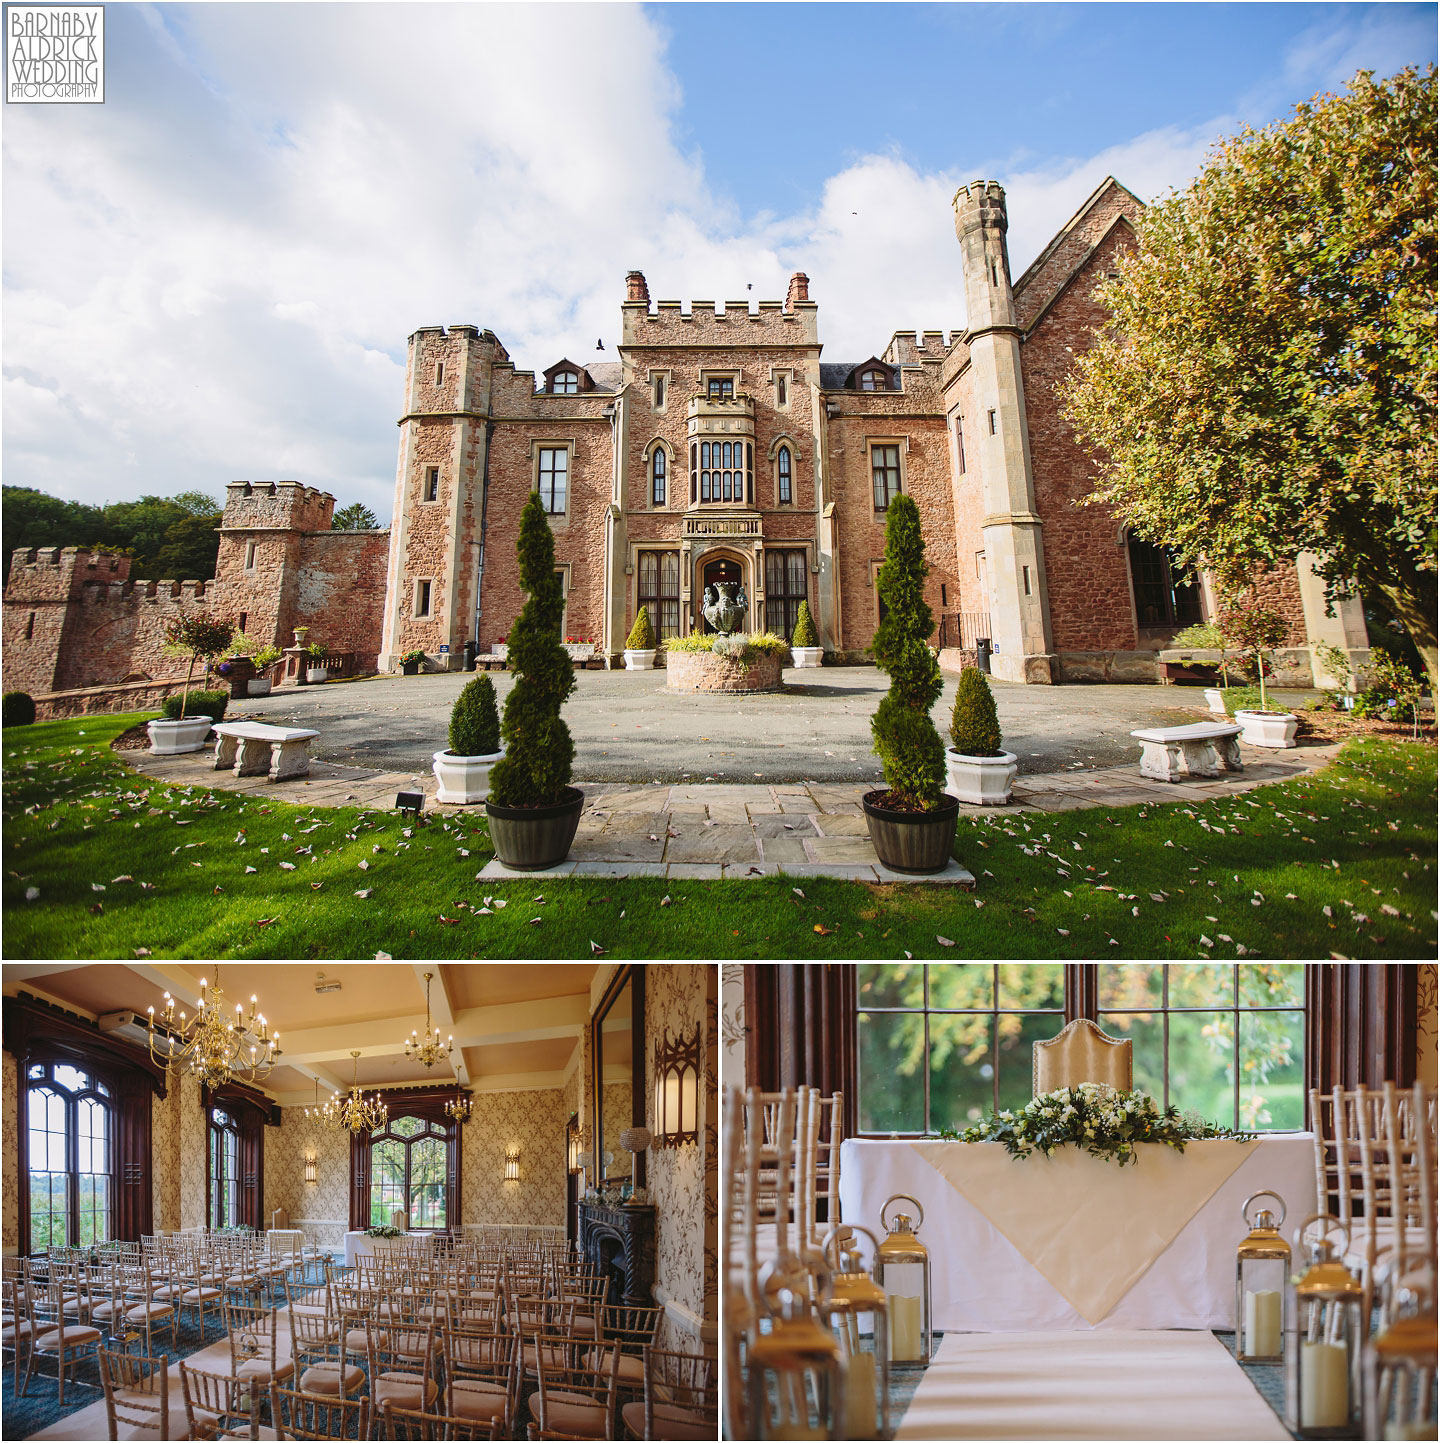 Wedding venue details at Rowton Caste, Shropshire Wedding Photographer, Shrewsbury wedding venue, Amazing UK Castle Wedding